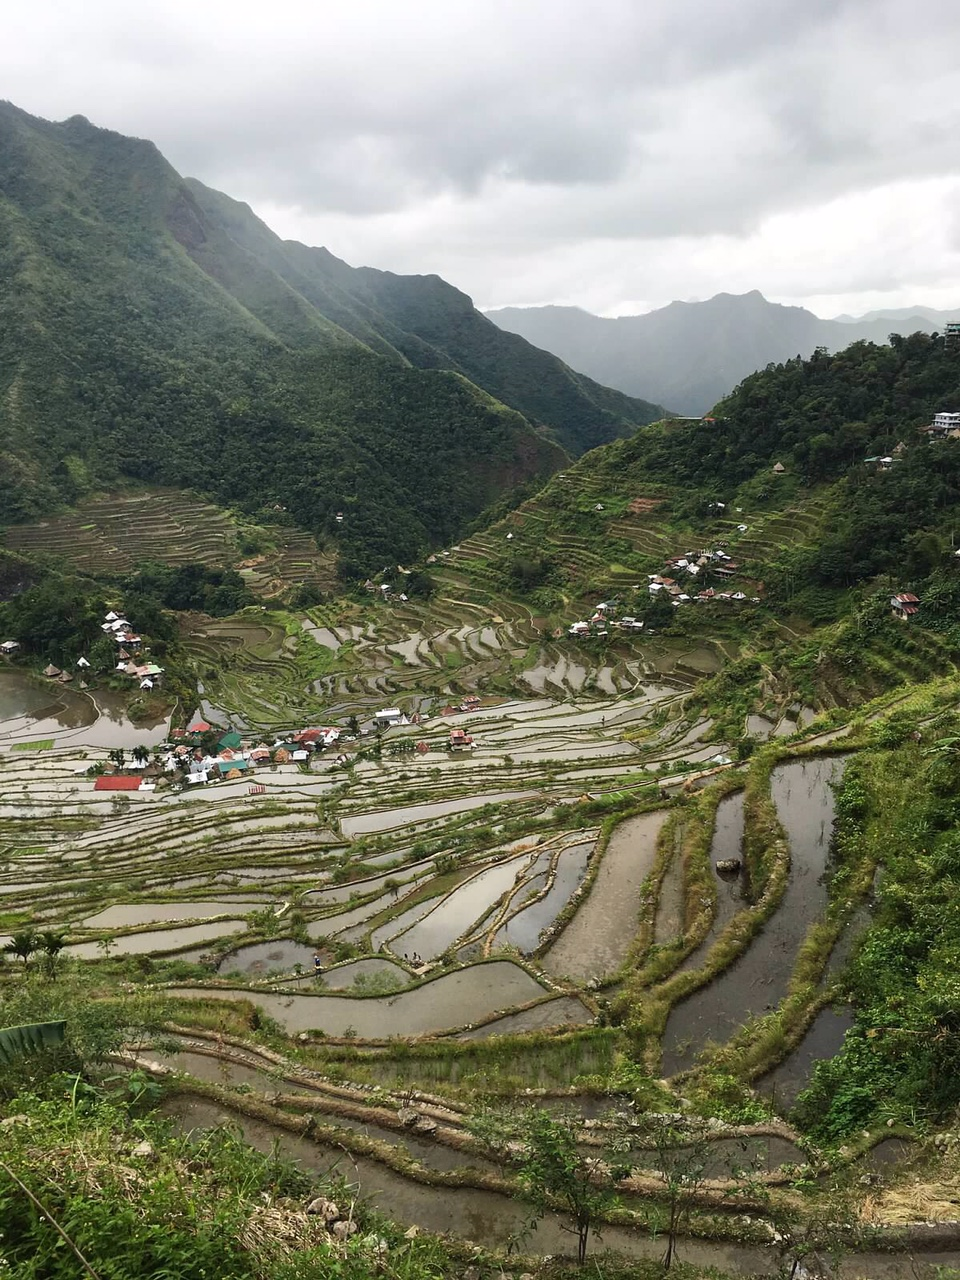 The UNESCO Batad rice terraces